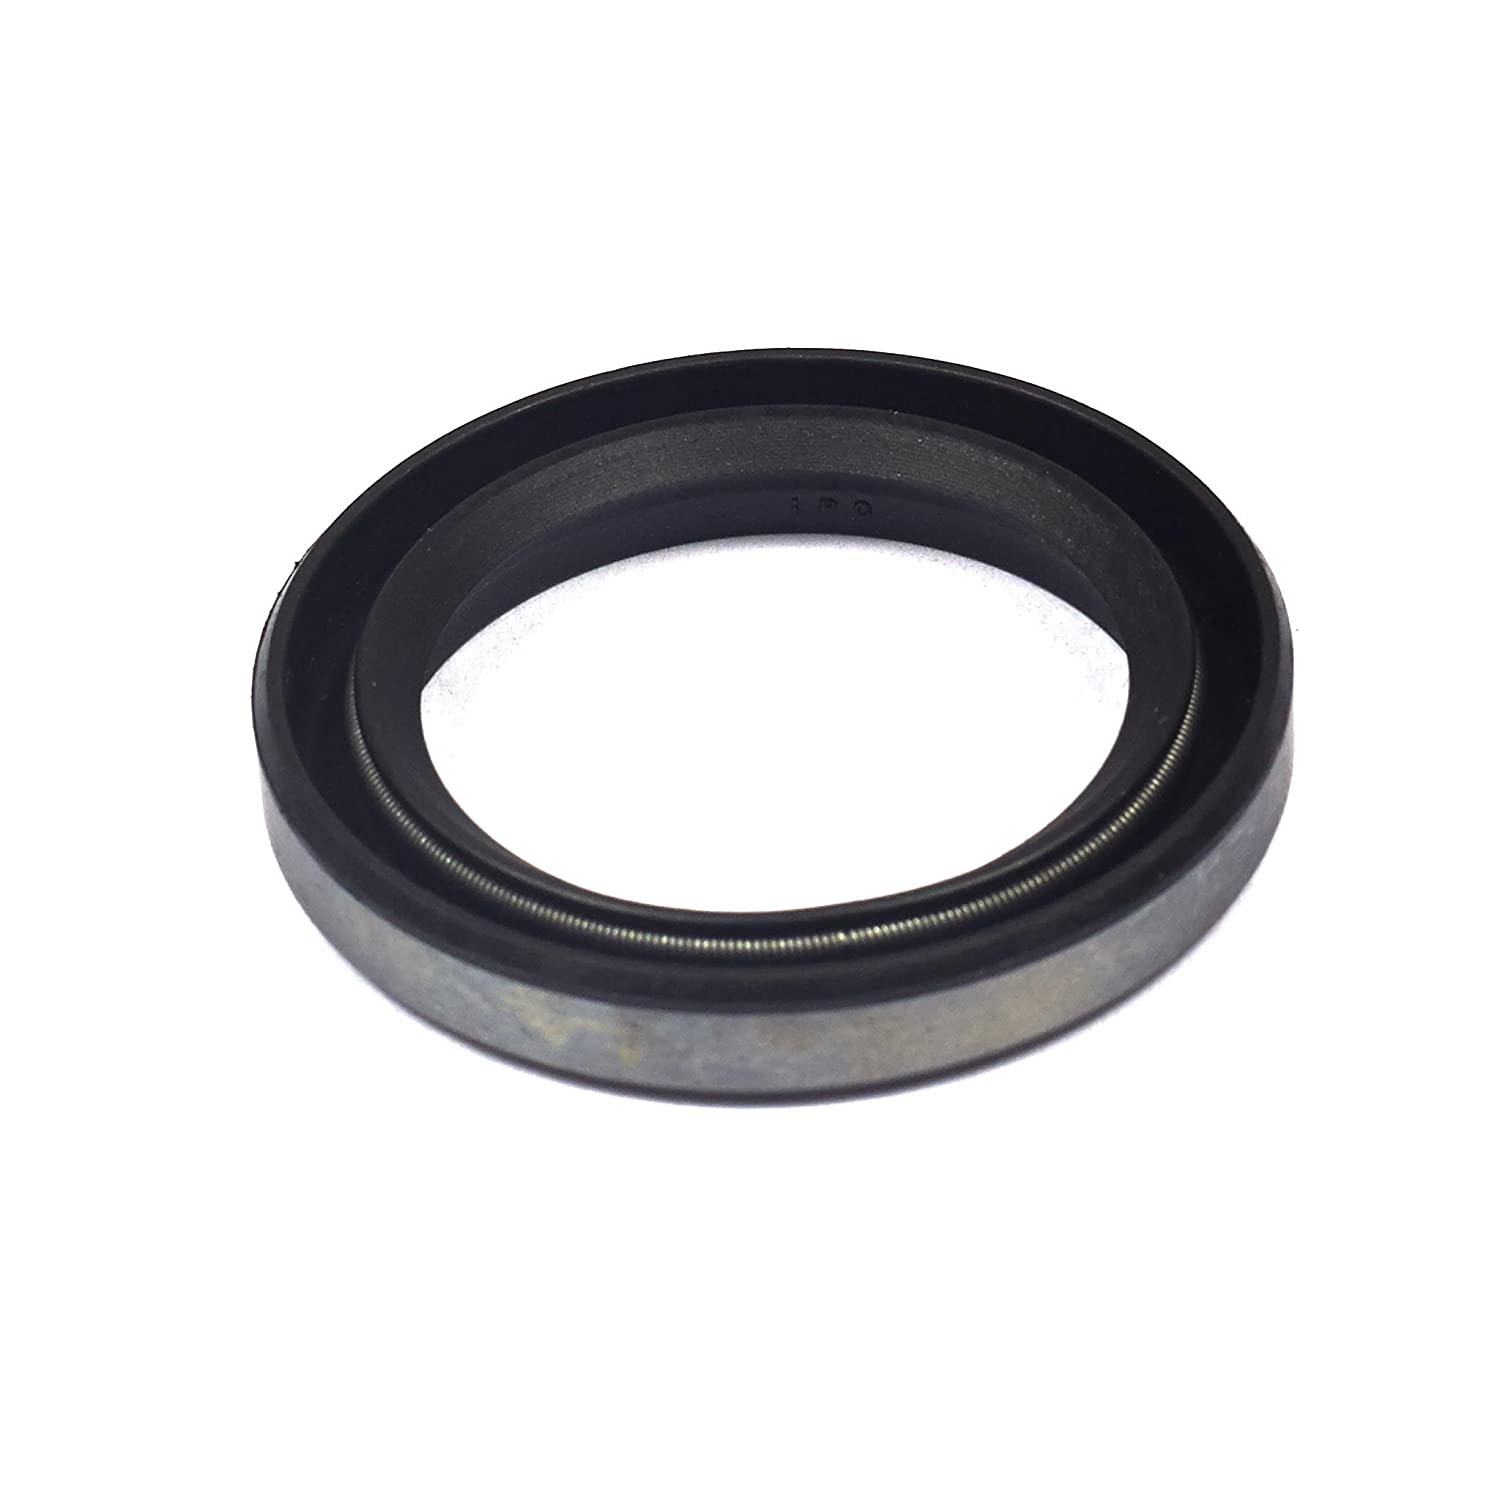 Briggs & Stratton 391086S Oil Seal Replaces 391086/290932/298423